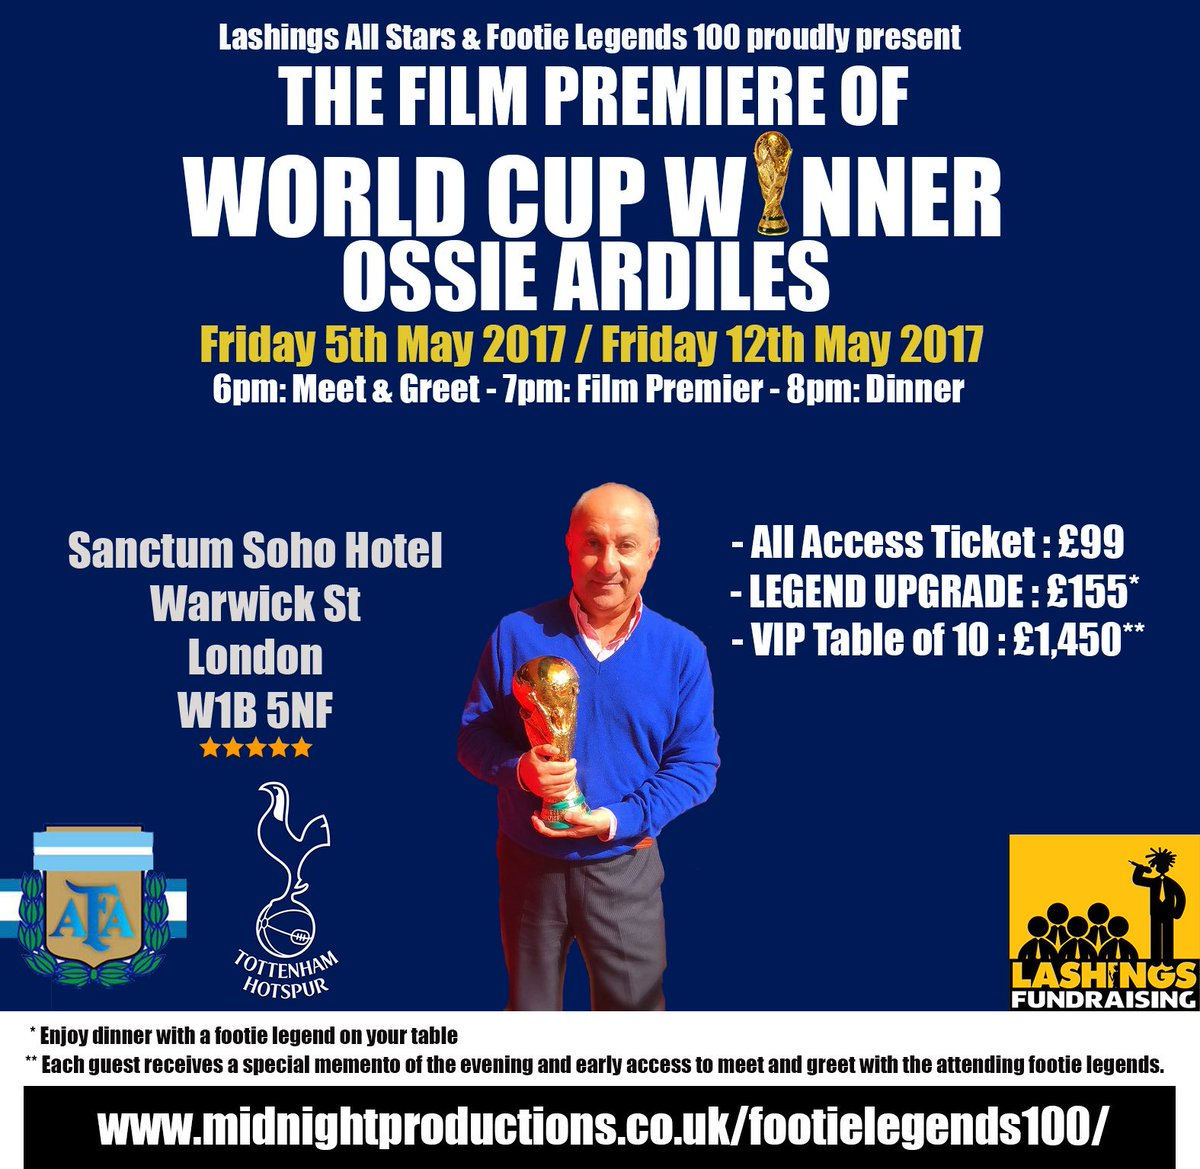 Lashings on twitter thfc legend osvaldooardiles film premiere at tickets via httpmidnightproductionsfootielegends100 picitterwfihhhmgrt m4hsunfo